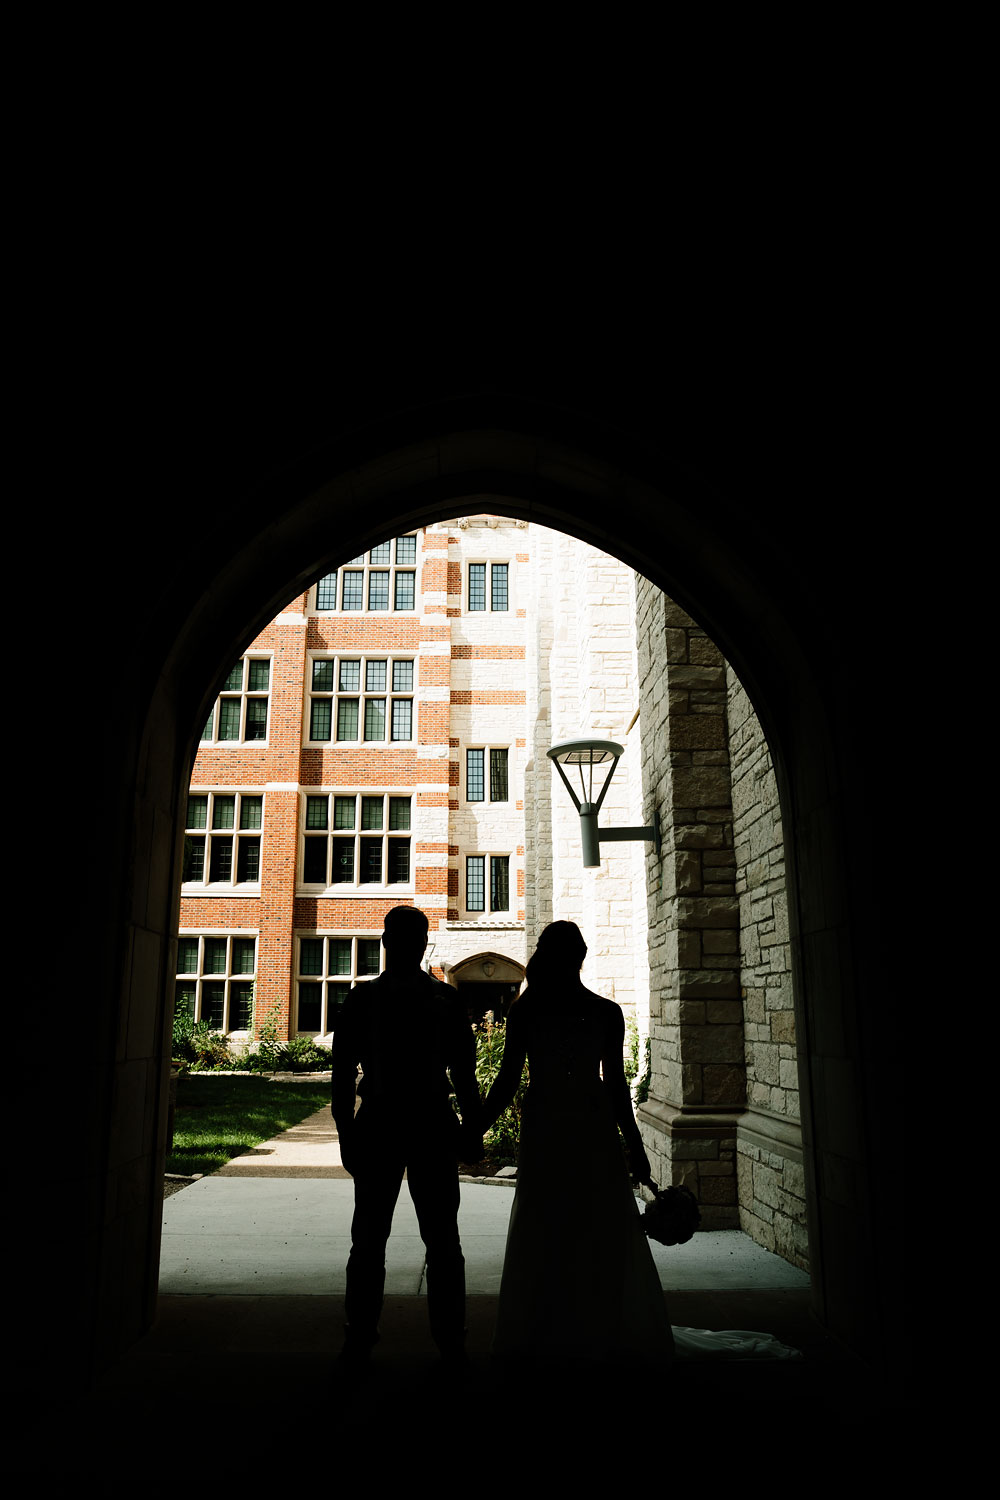 cleveland-wedding-photographers-university-of-toledo-ohio-108.jpg